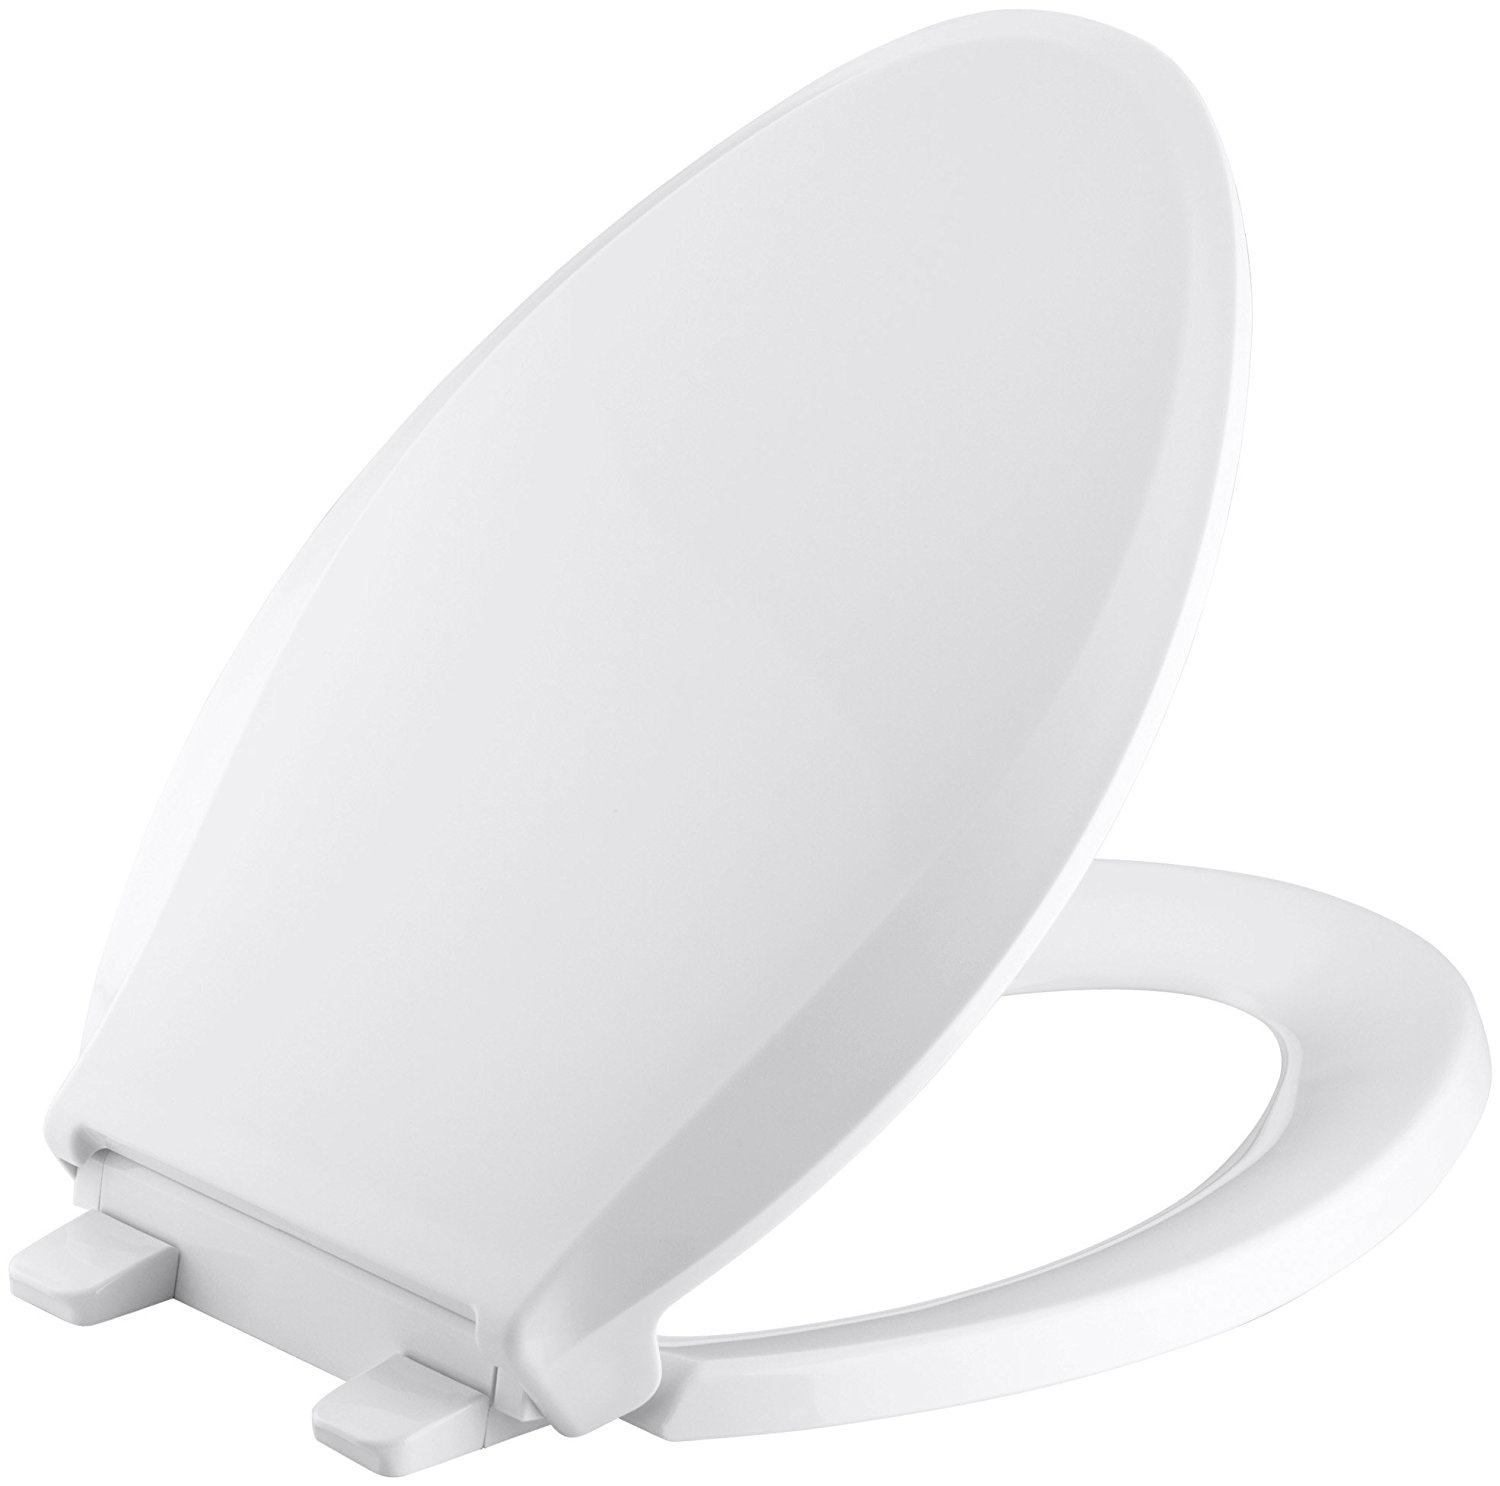 Elongated Toilet Seat From Kohler Preferred By Tall And